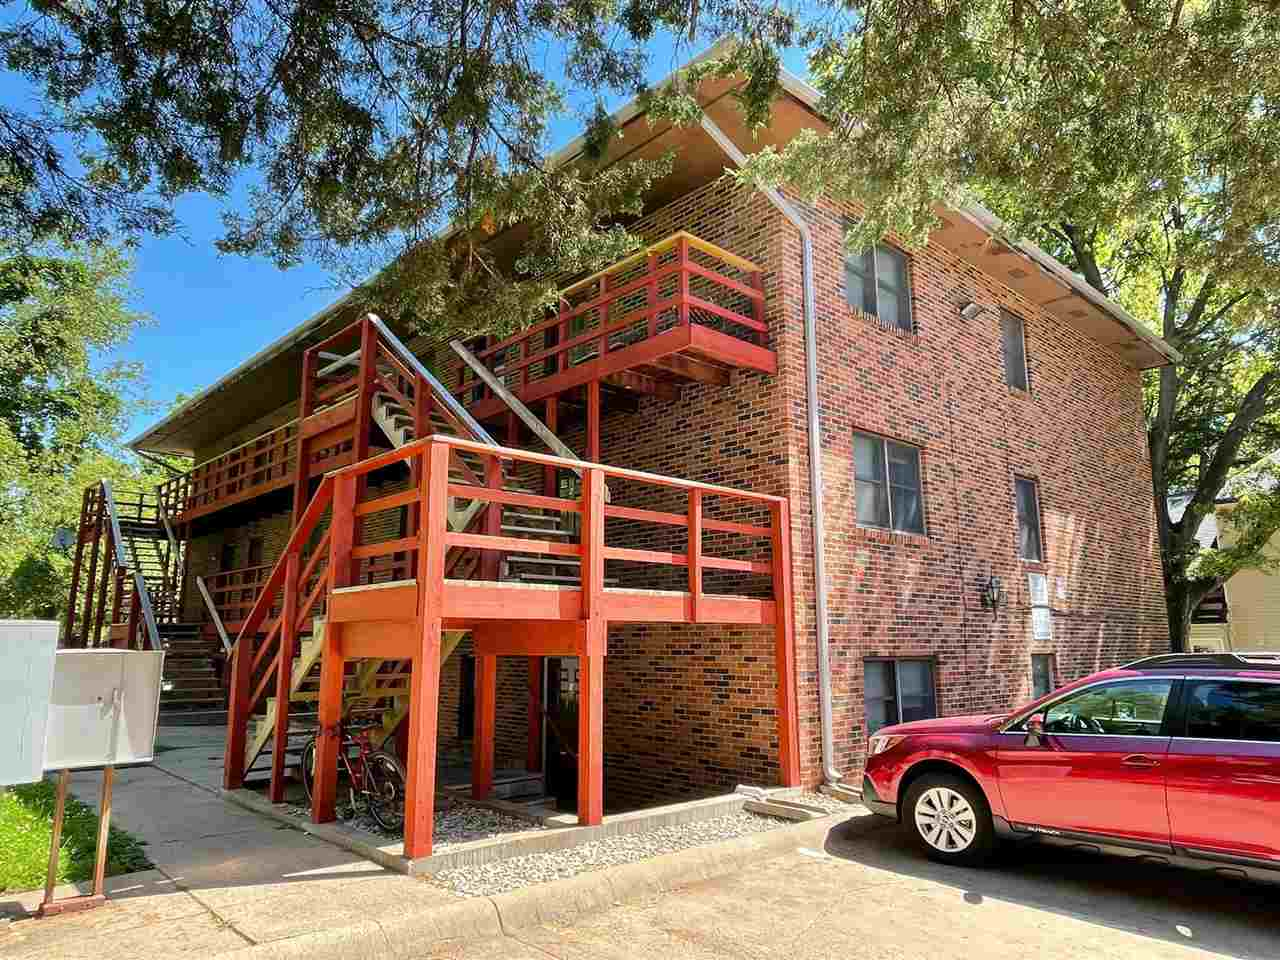 All brick 9 plex featuring 3 bedroom 1.5 bath units.  Current gross annual income is $101,520.  Priced at 7% CAP rate with estimated 65% NOI.